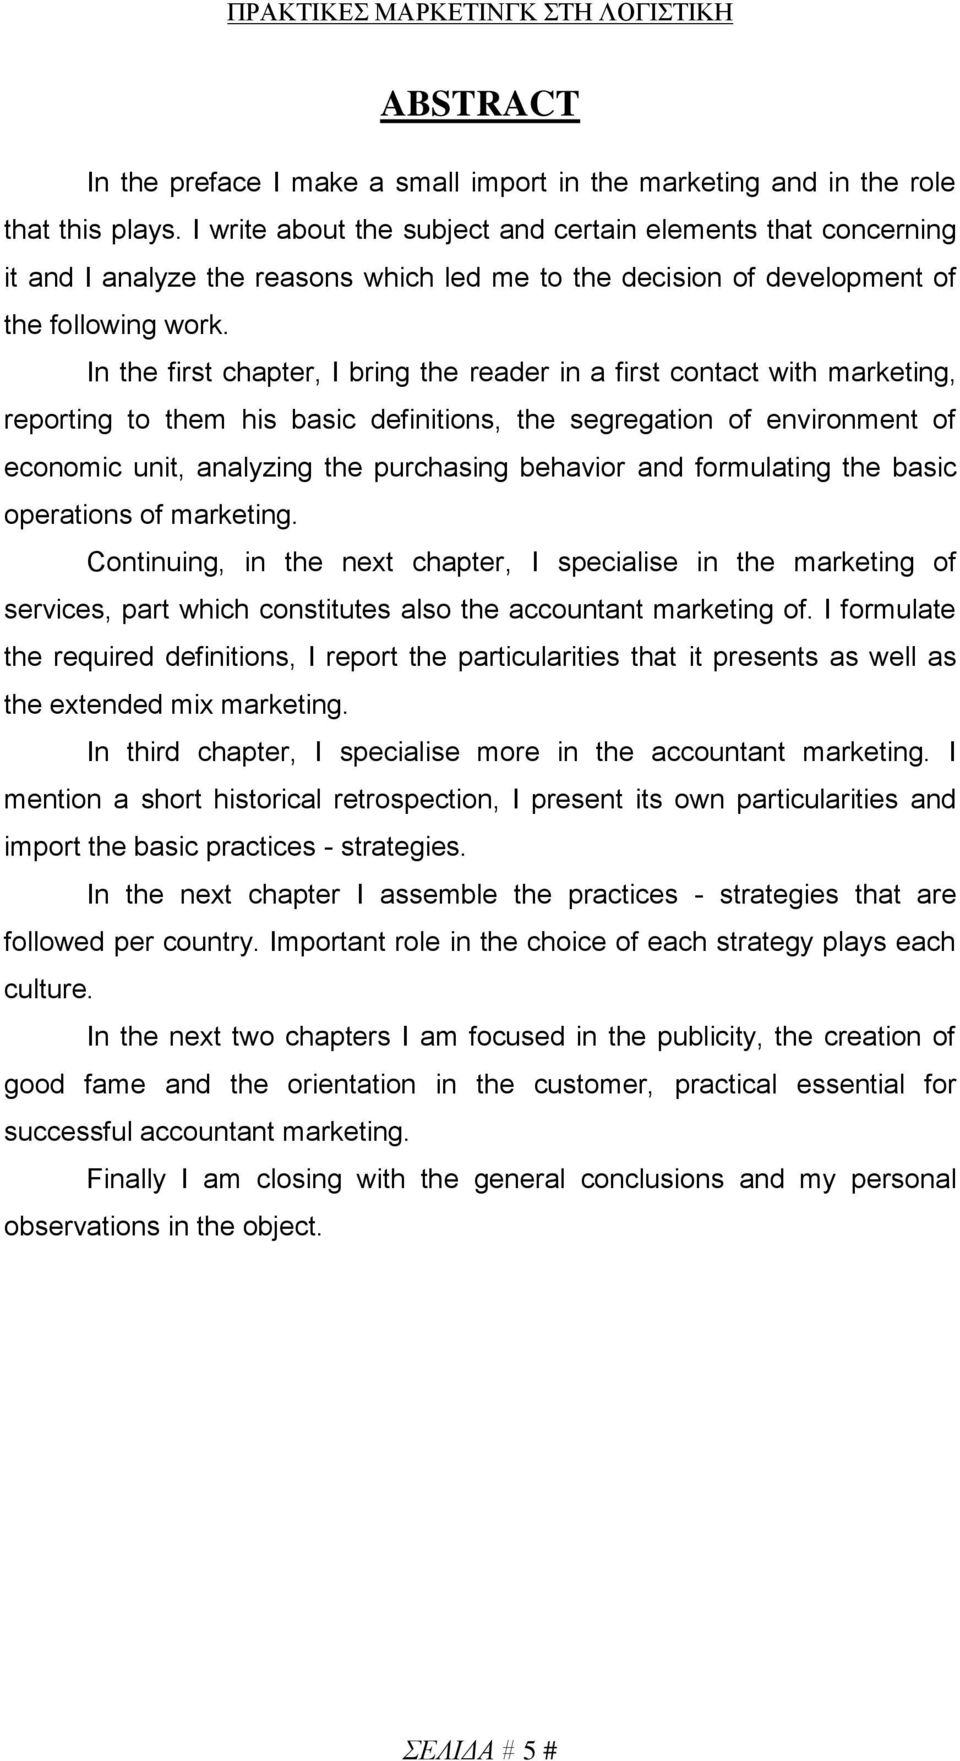 In the first chapter, I bring the reader in a first contact with marketing, reporting to them his basic definitions, the segregation of environment of economic unit, analyzing the purchasing behavior